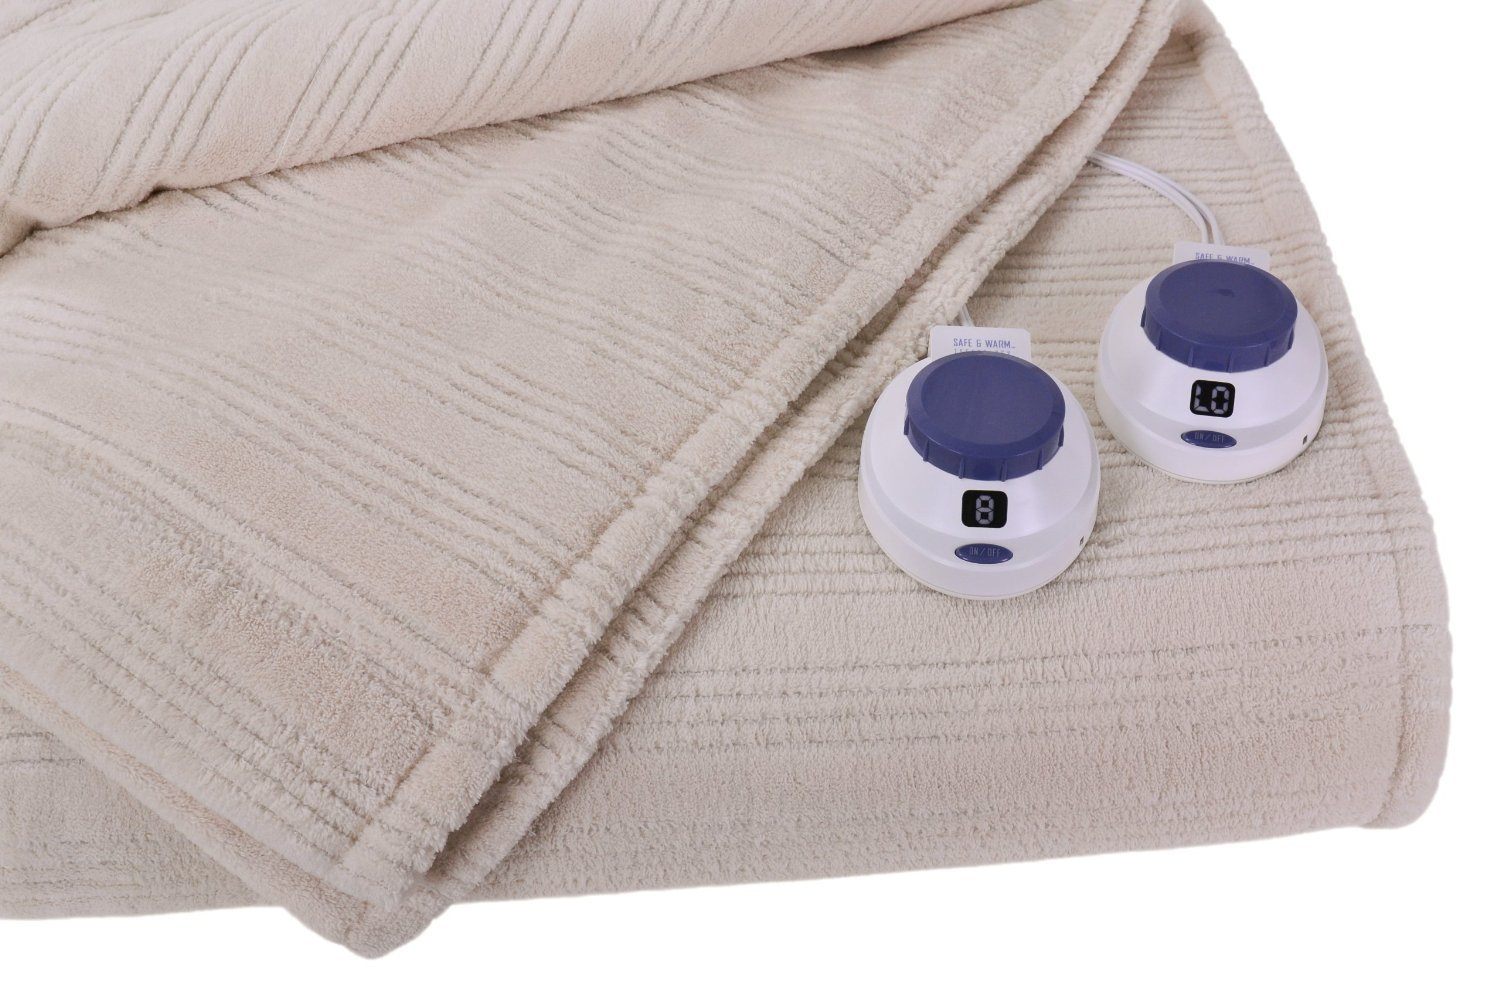 6. Ultra Soft Microfiber King Size Blanket